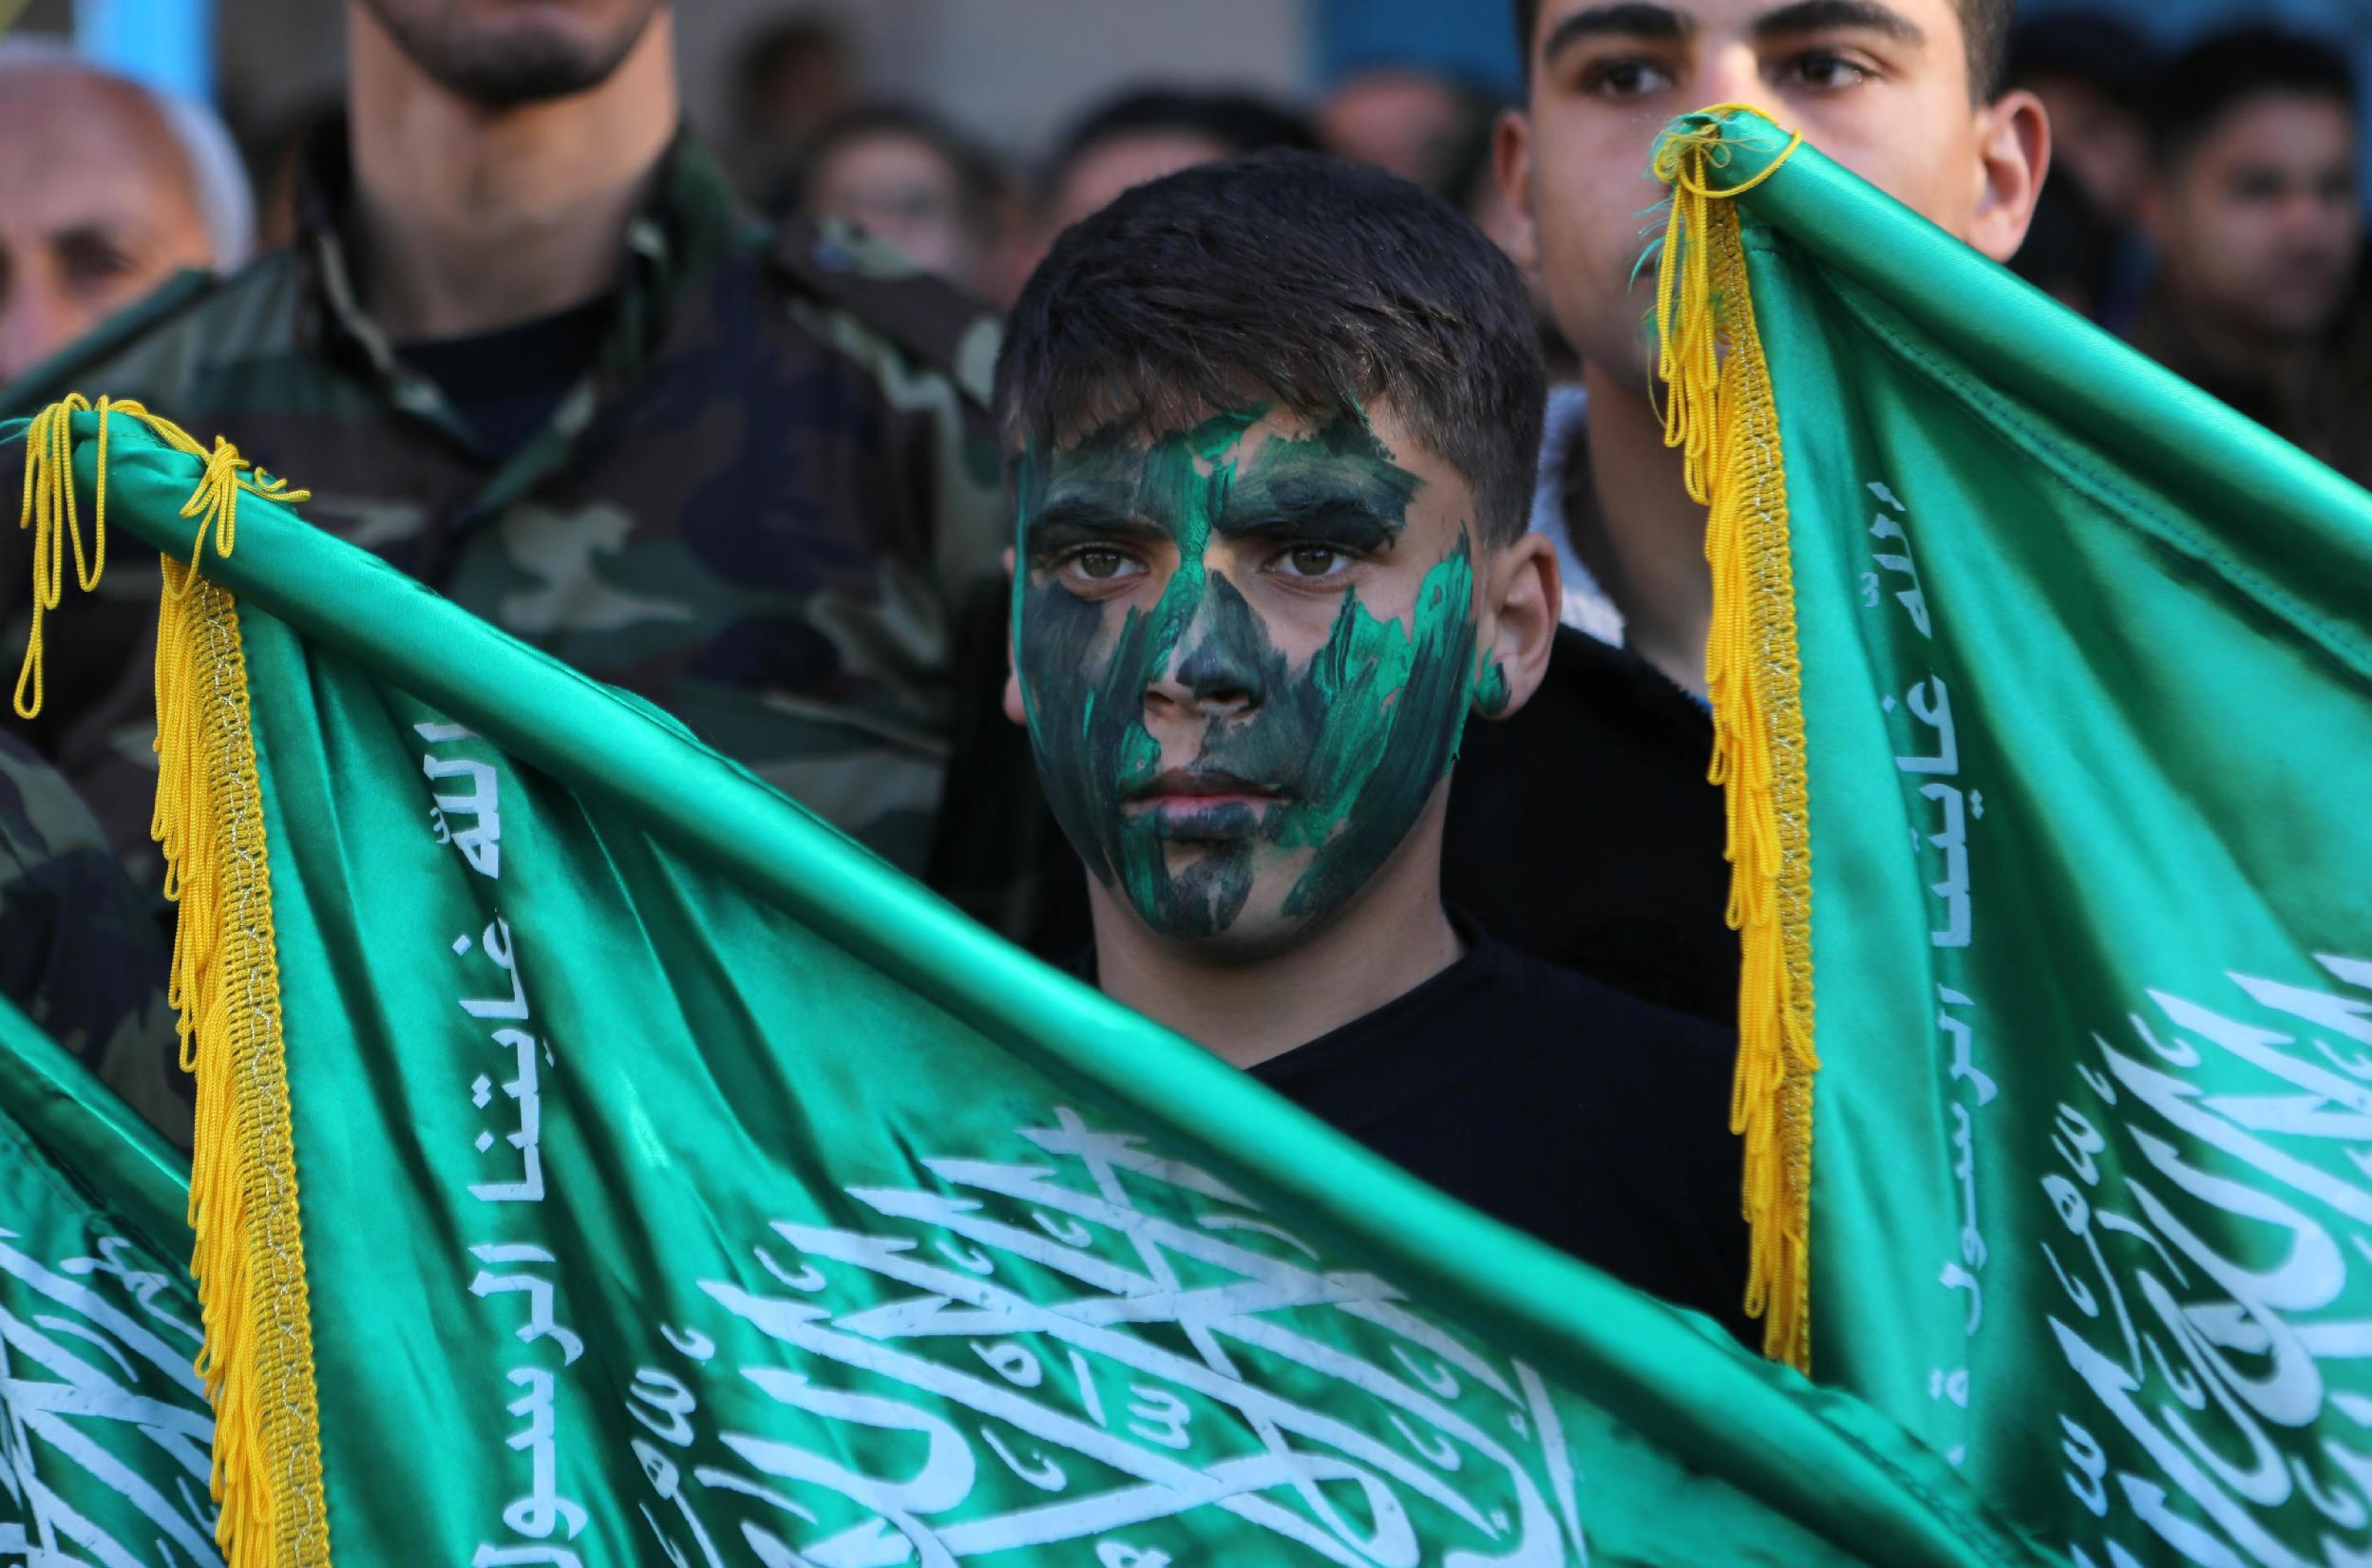 Hamas supporters rally near the Rafah border between southern Gaza and Egypt on February 5, 2015 to condemn the decision of an Egyptian court to ban the armed wing of the Palestinian Islamist movement